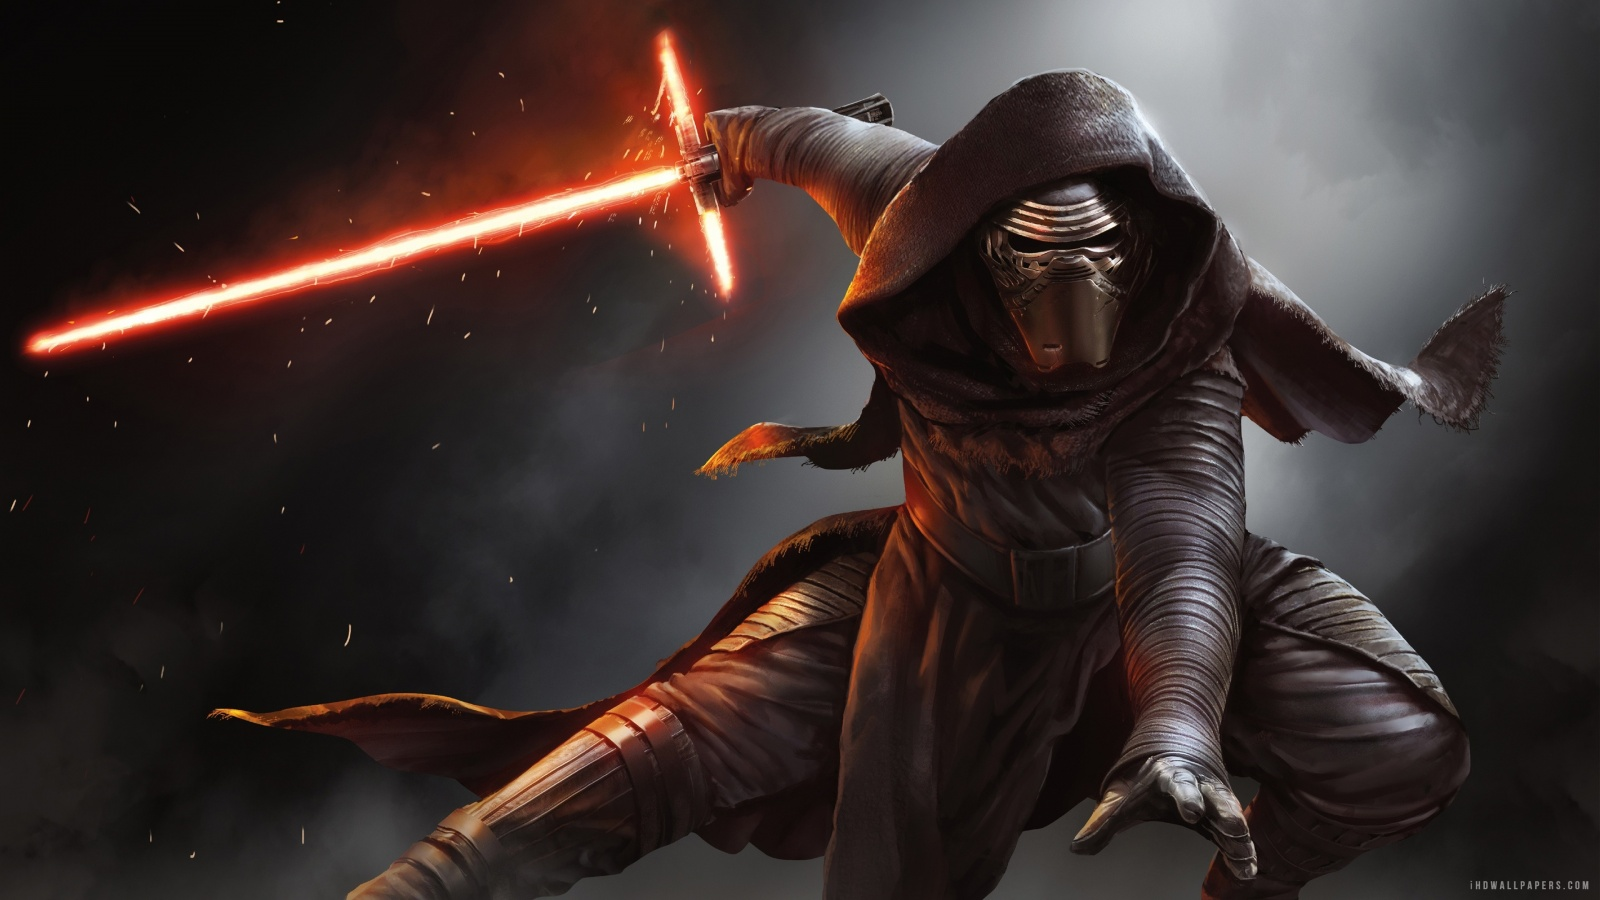 Kylo Ren HD Wallpaper   iHD Wallpapers 1600x900